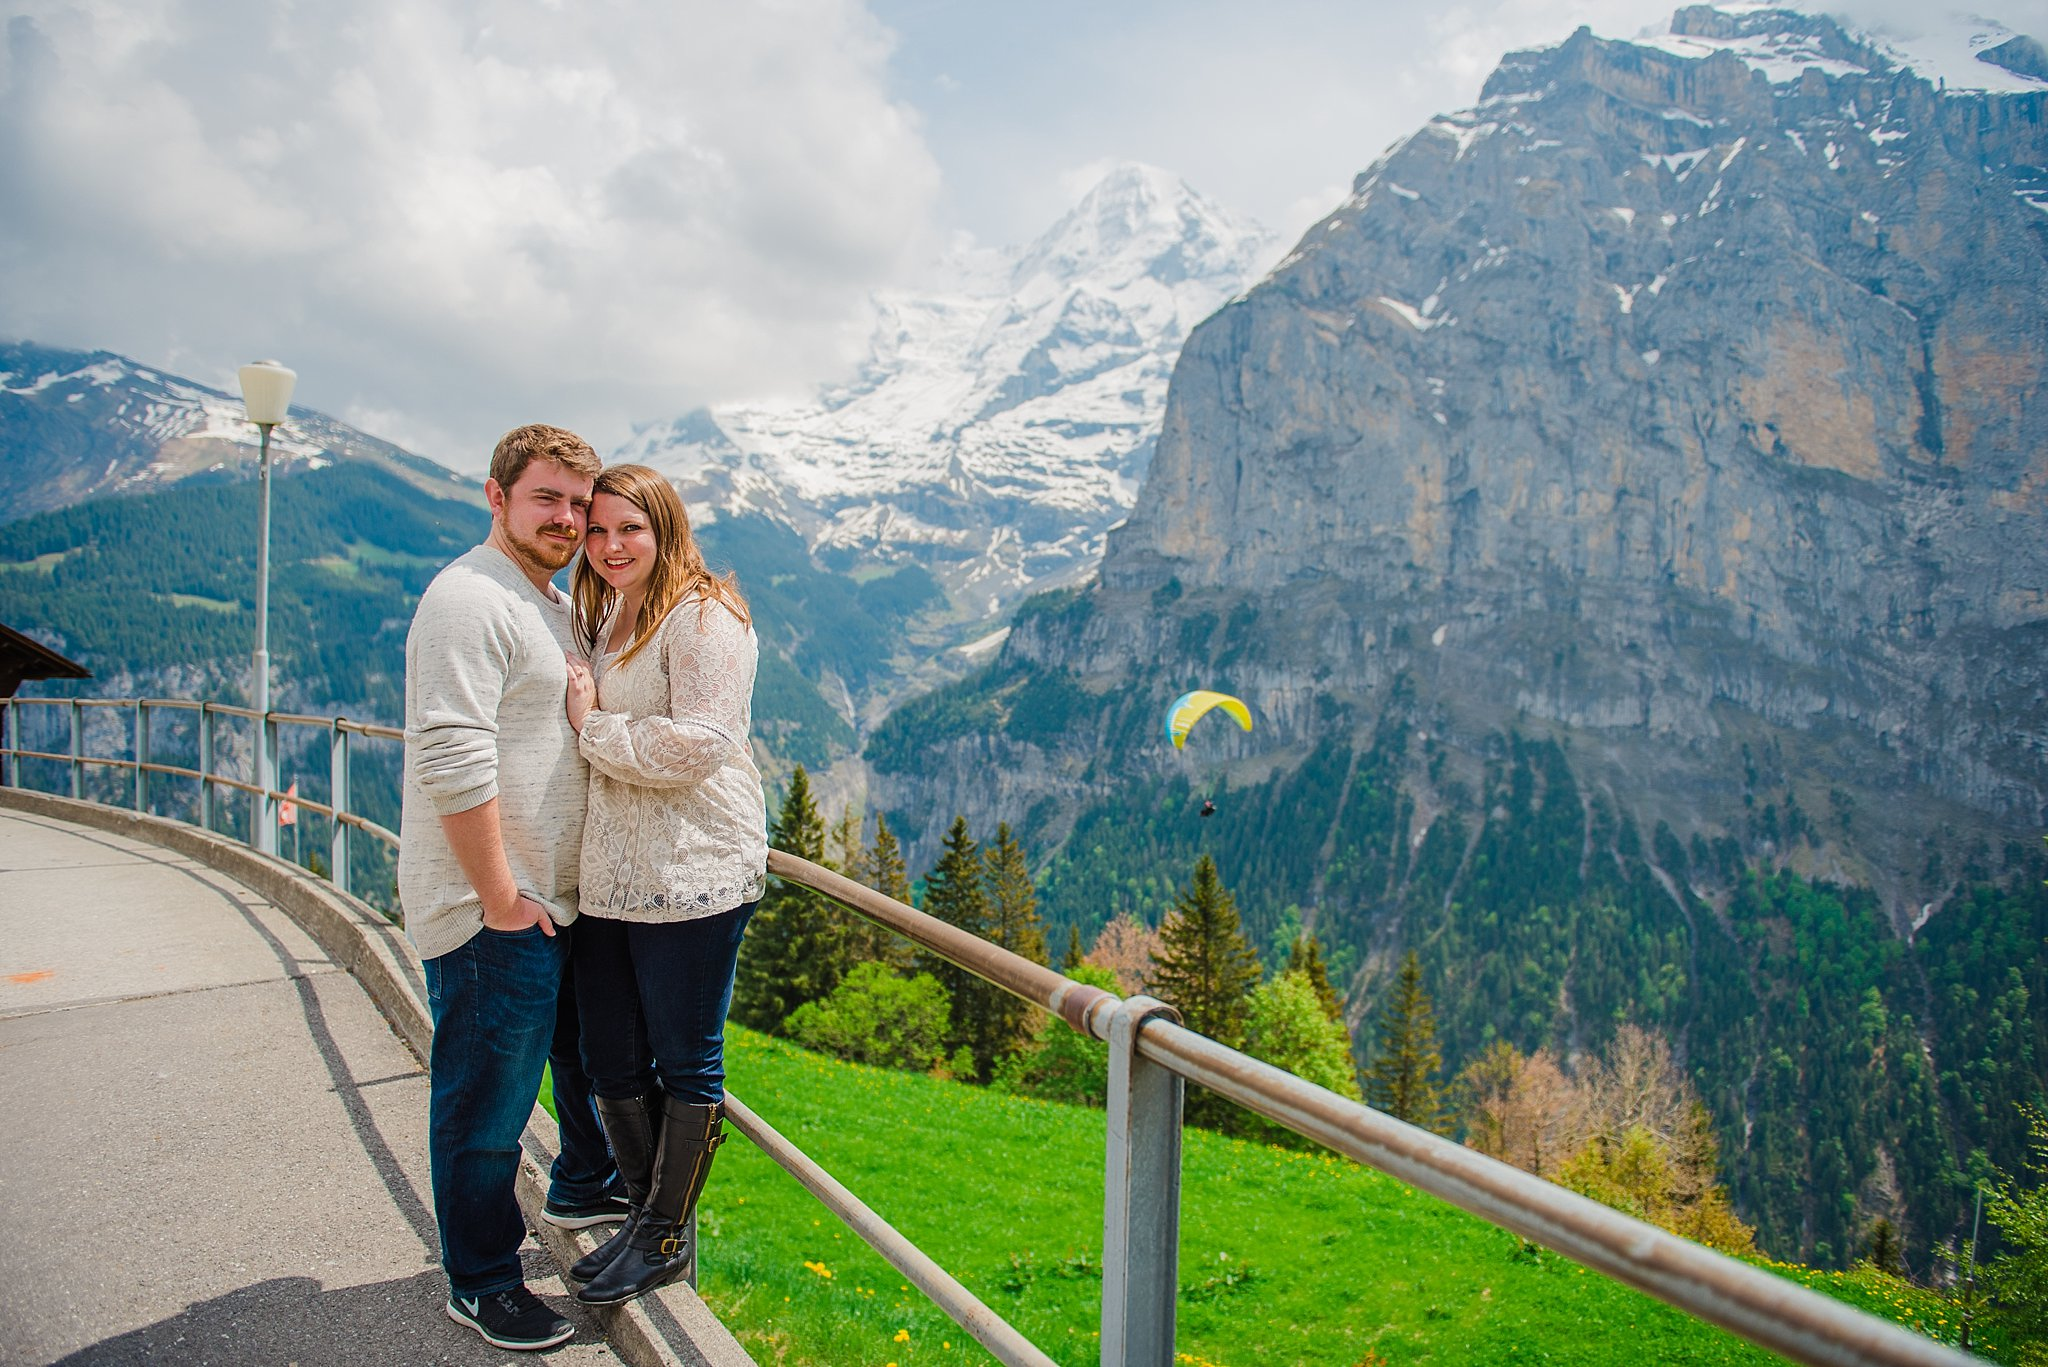 Lauterbrunnen,Murren,Wengen,adventure,adventure couple photography,adventure engagement photography,alps,amanda joy photography,anniversary,bernese oberland,couple goals,couple in love,destination engagement photo session,engagement photos,europe,european vacation,hilary gardiner photography,interlaken,jungfrau region,mountain engagement session,mountains,romantic,swiss,swiss alps,swiss alps engagement session,swiss chalet,switzerland,